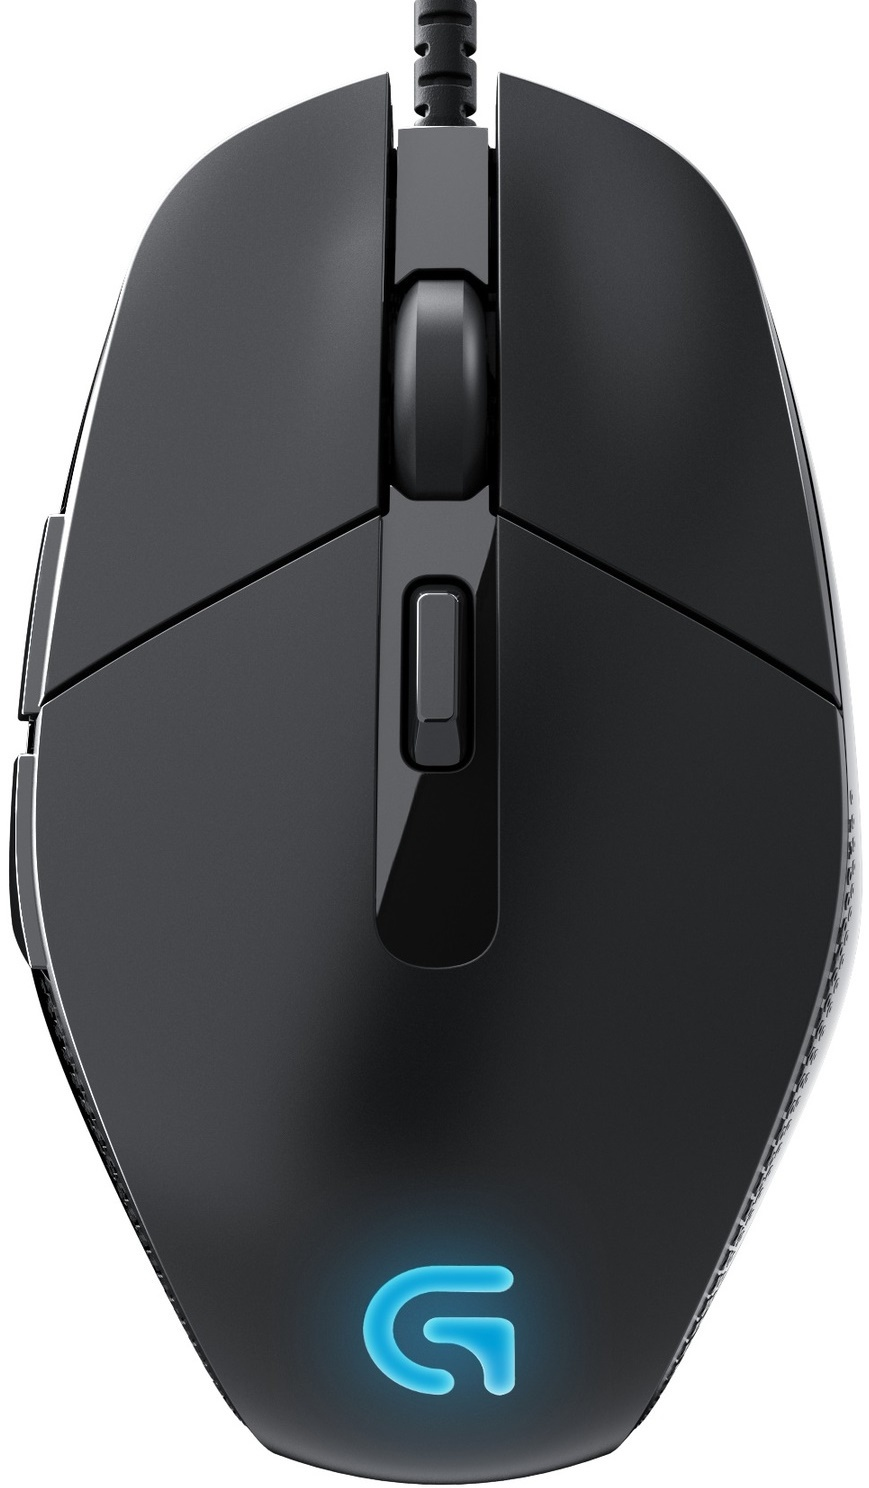 Logitech G302 MOBA Gaming Mouse for  image